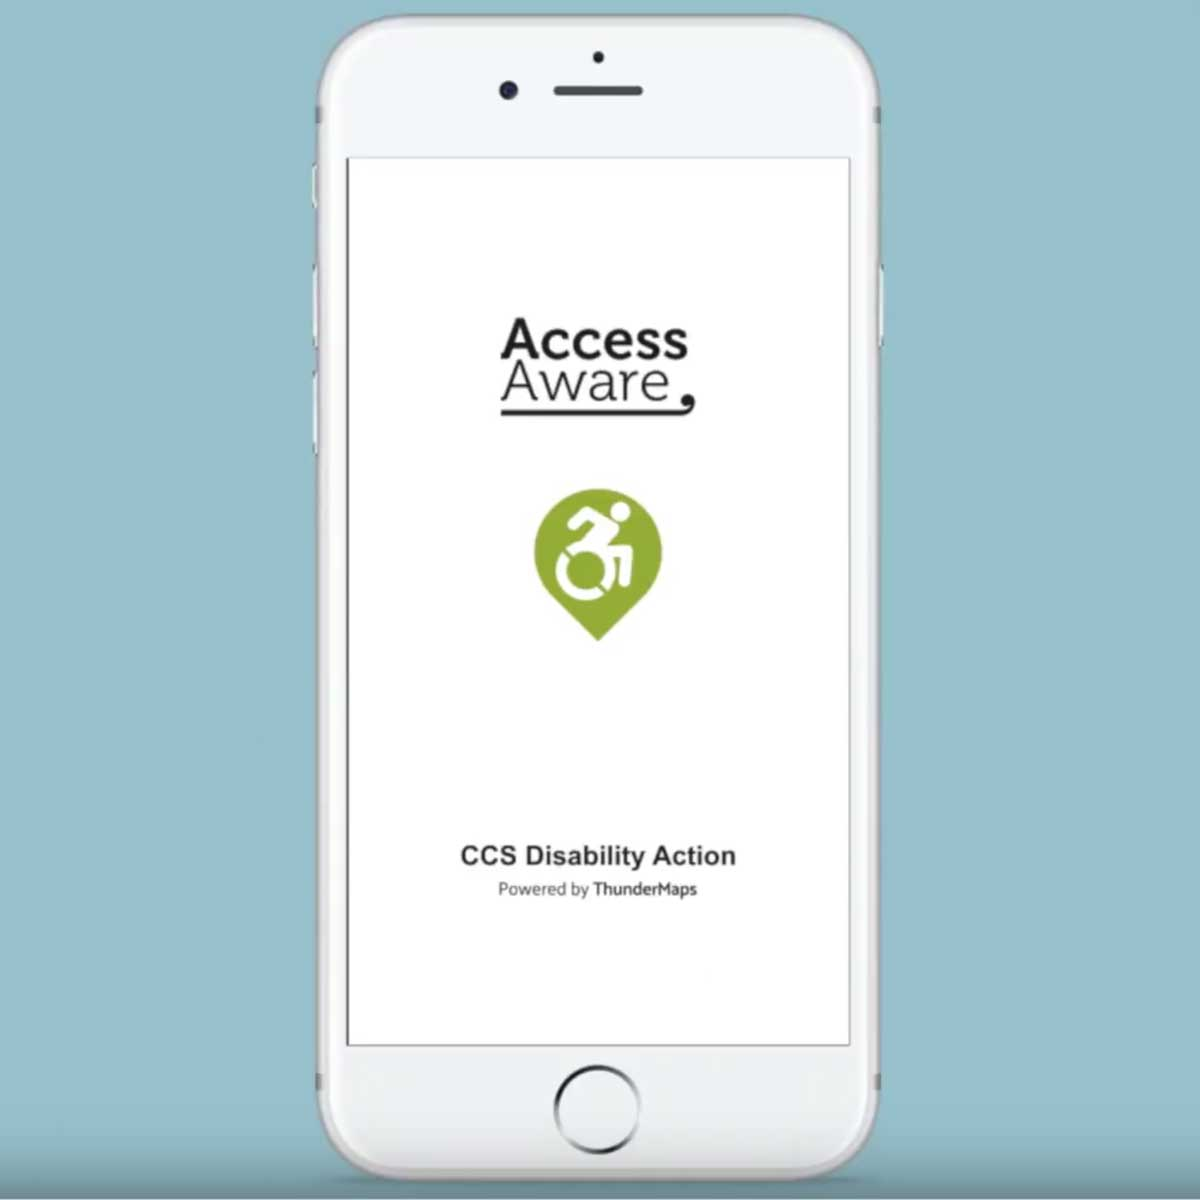 CCSDA Access Aware's Cover